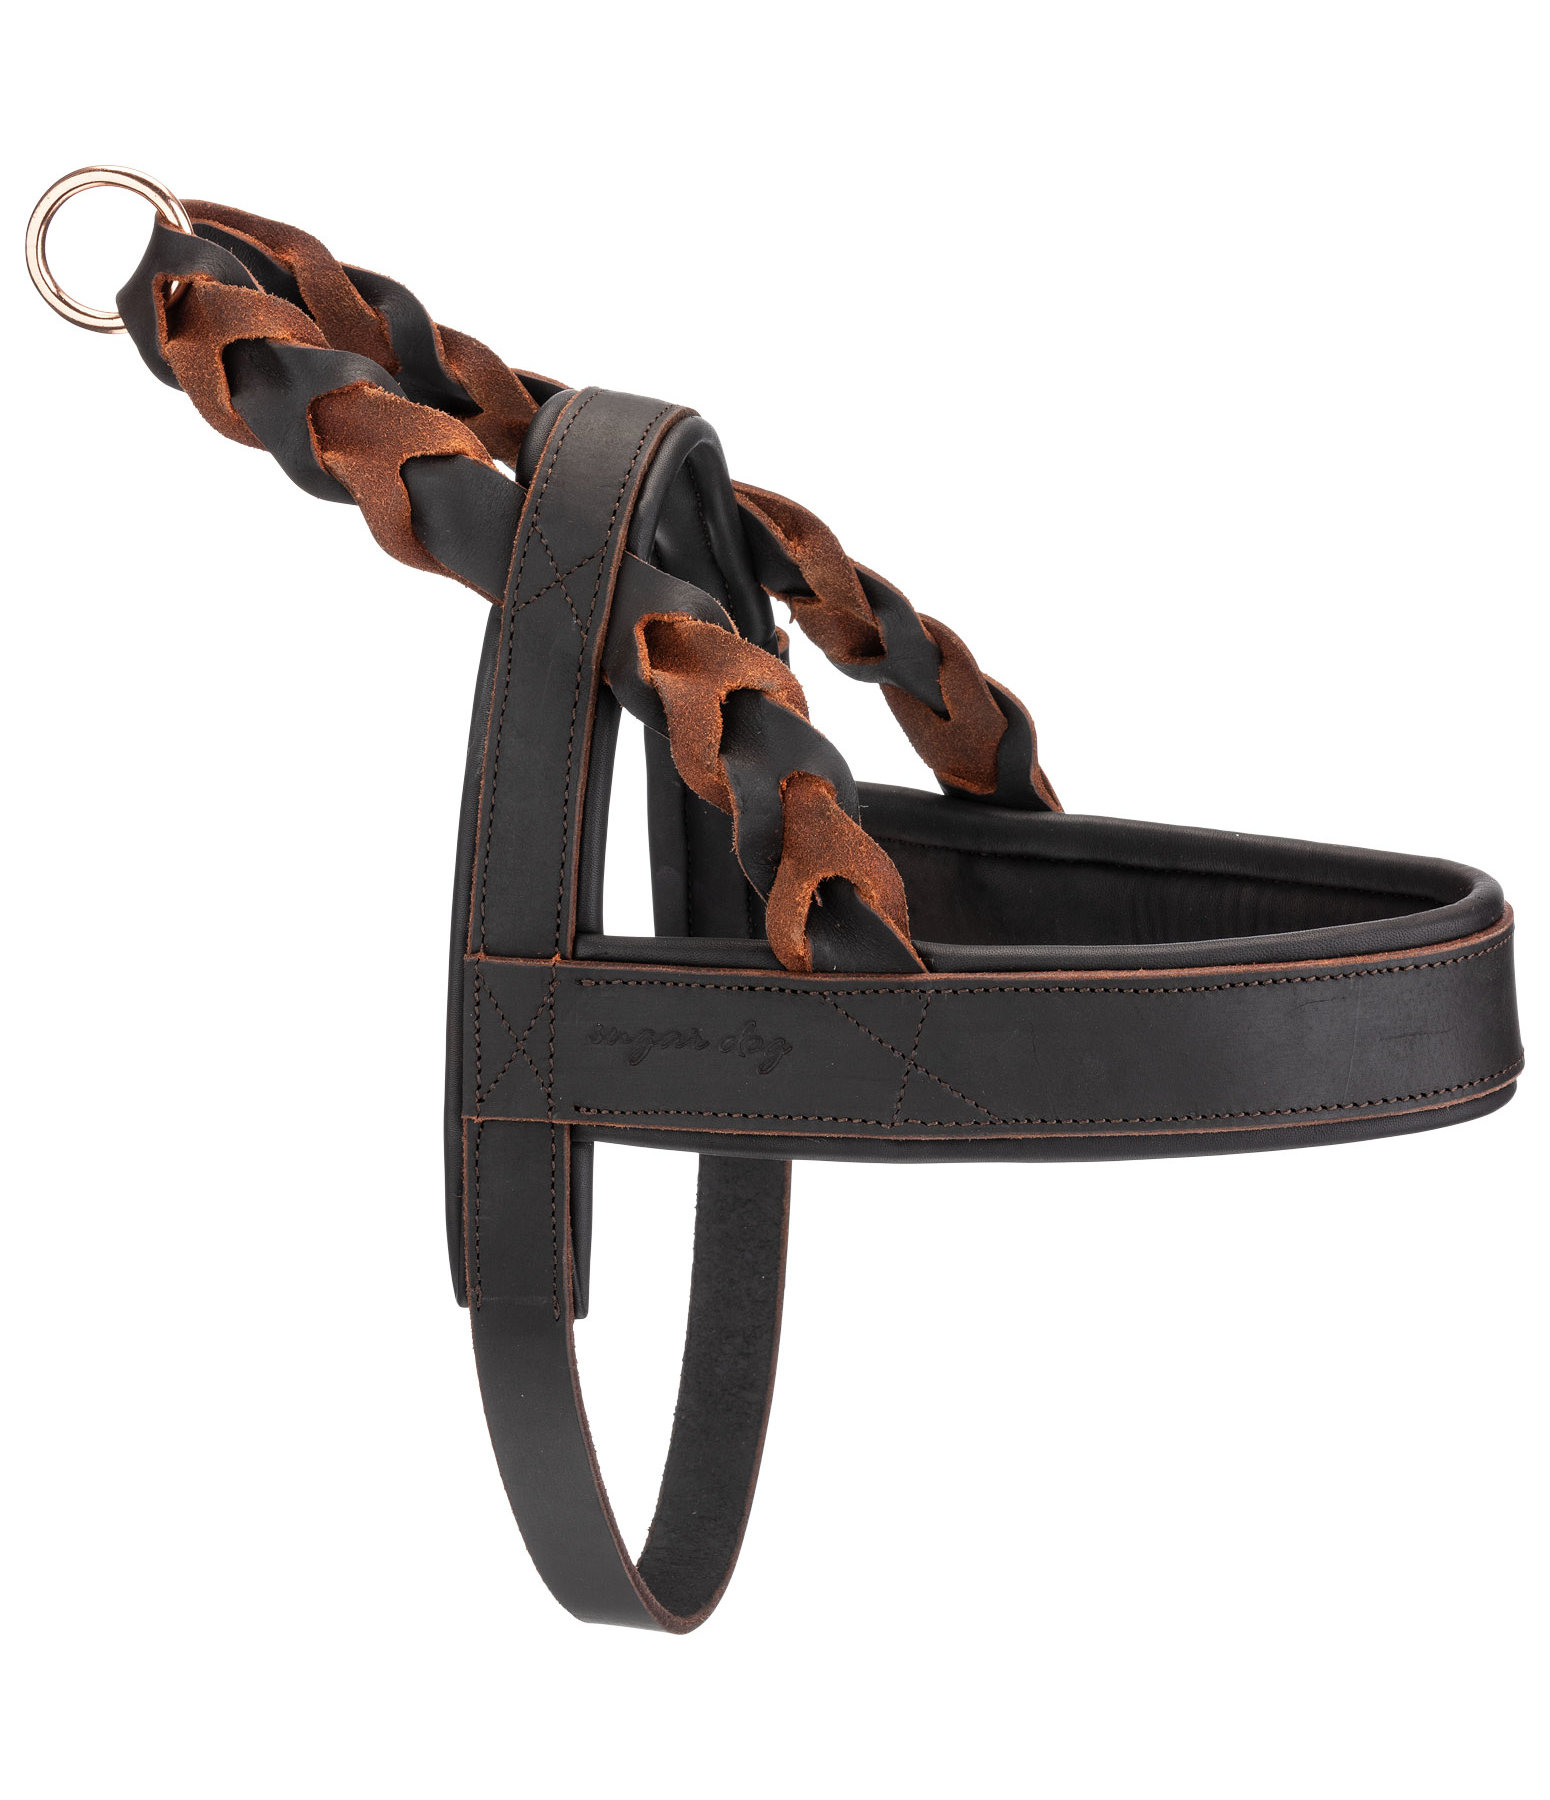 Woven Leather Dog Harness Vincenzo